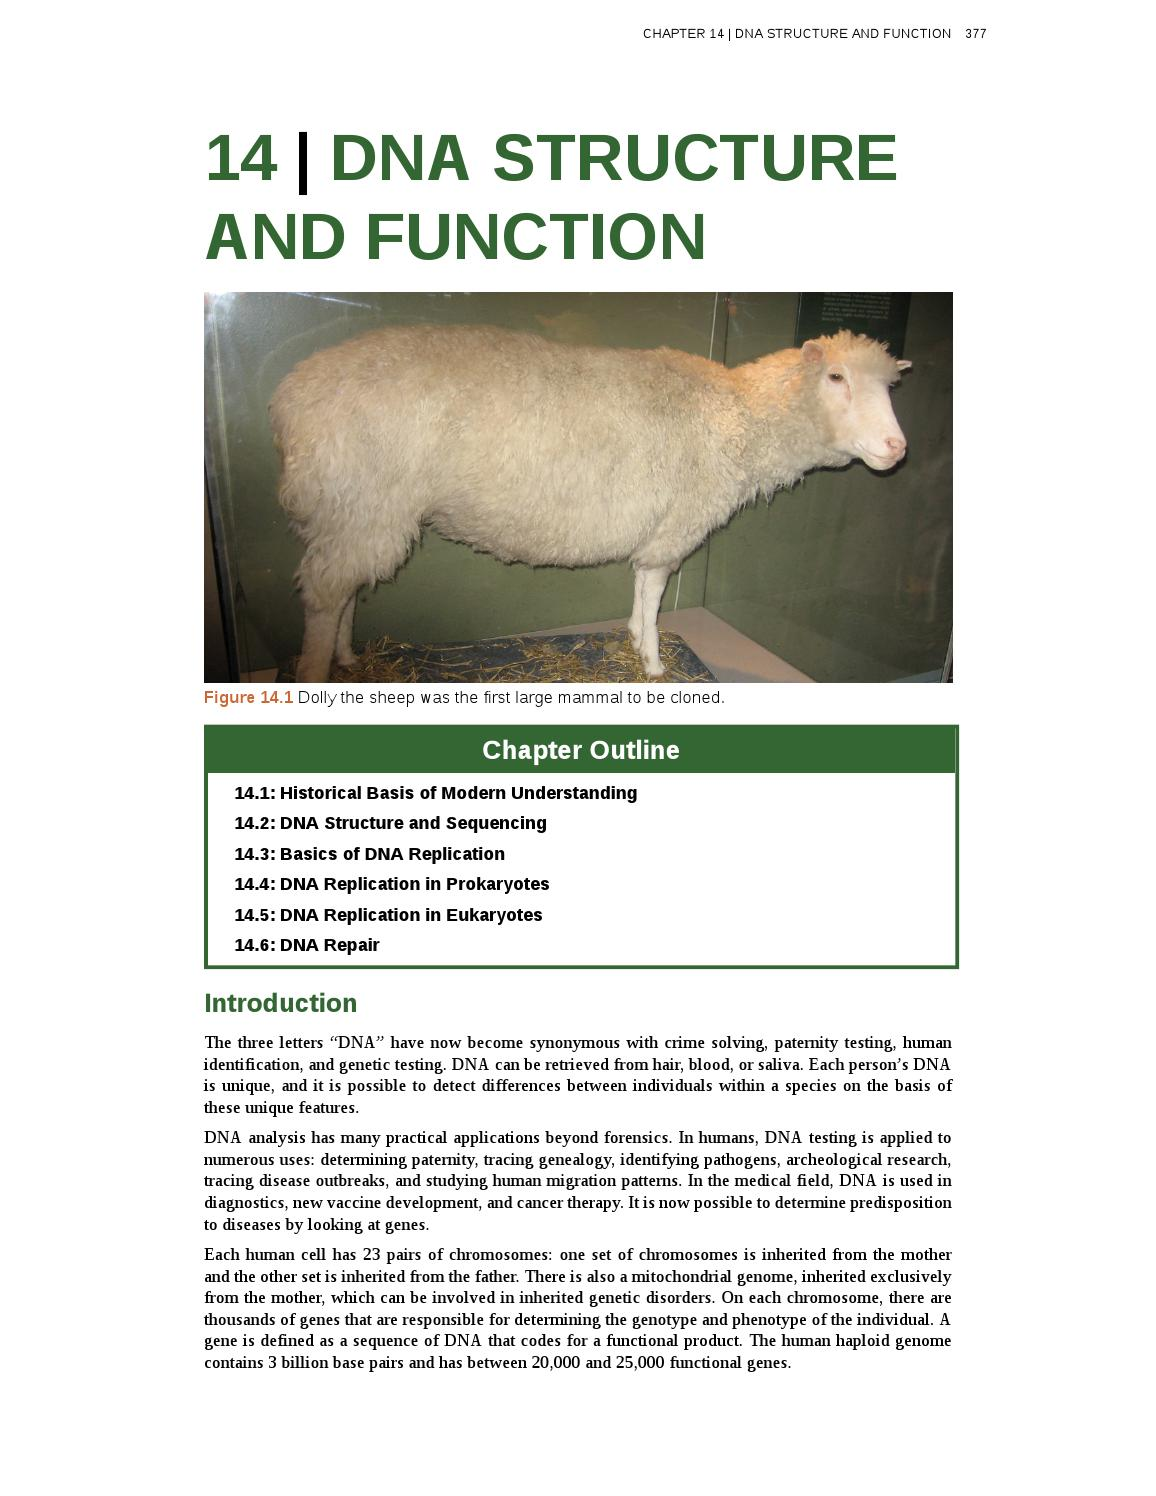 dolly the sheep cloning diagram 1985 ford ranger wiring reading for chapter 14 downloadable pdf by mattpearcy